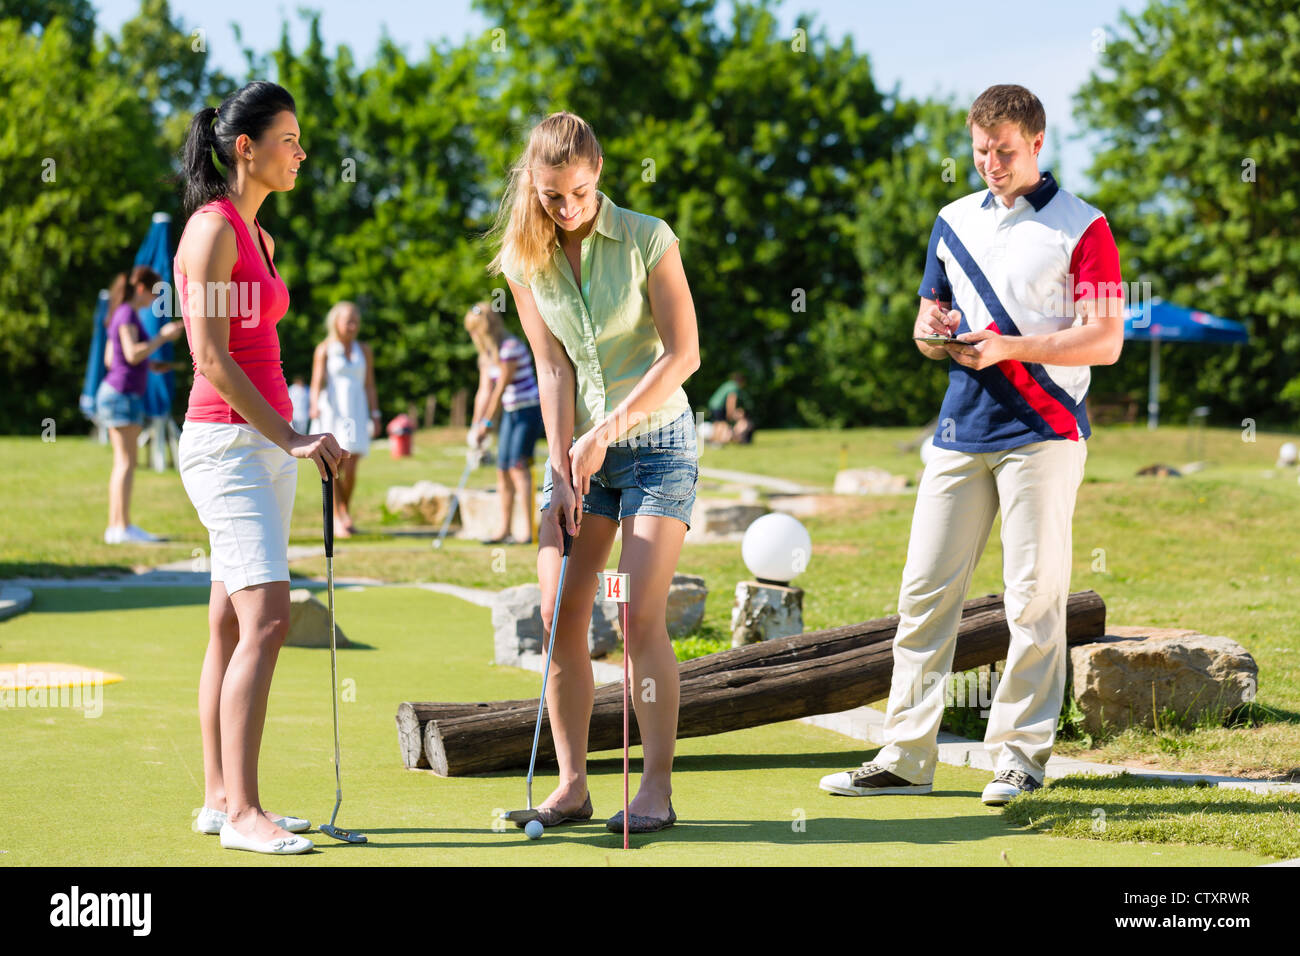 People, man and women, playing miniature golf on a beautiful summer day Stock Photo